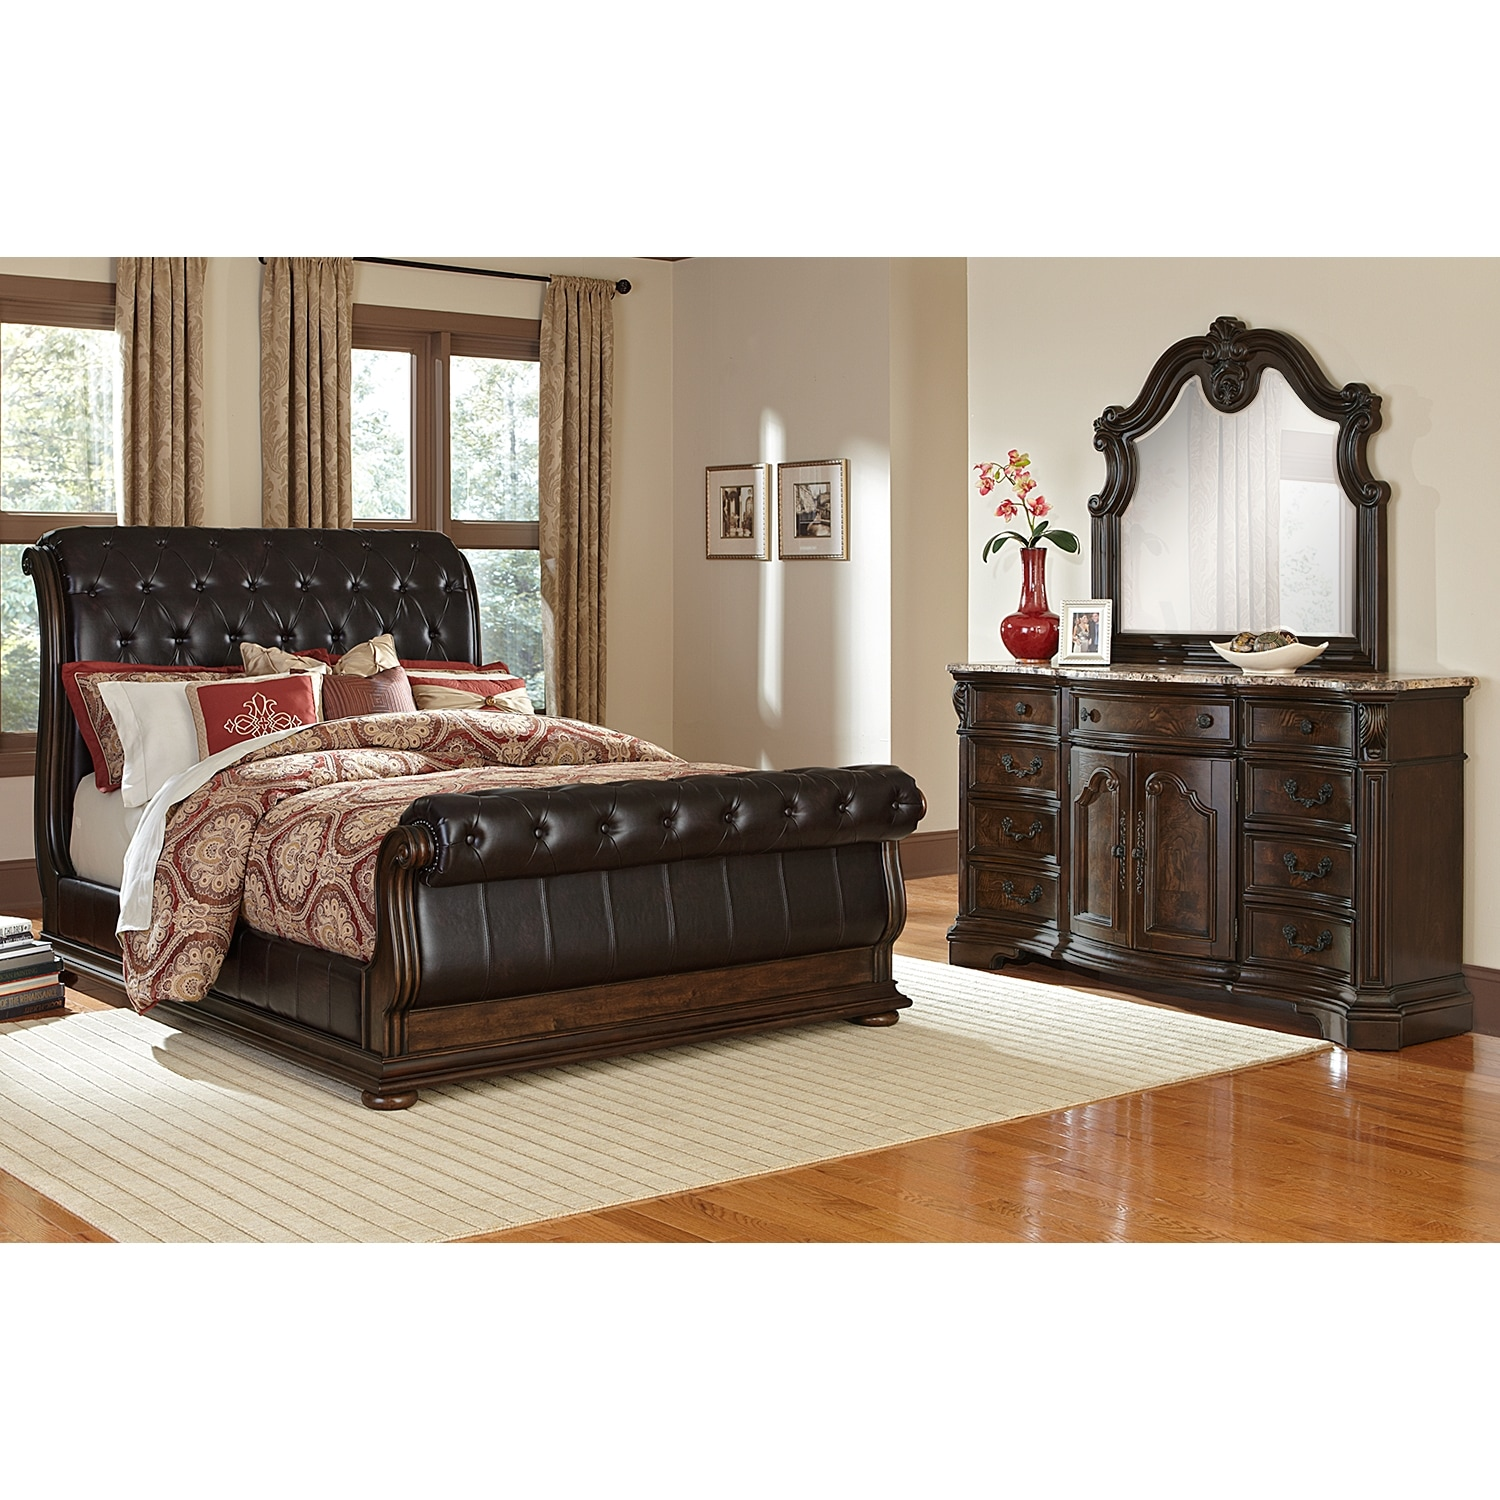 Monticello 5 piece queen sleigh bedroom set pecan for Signature furniture